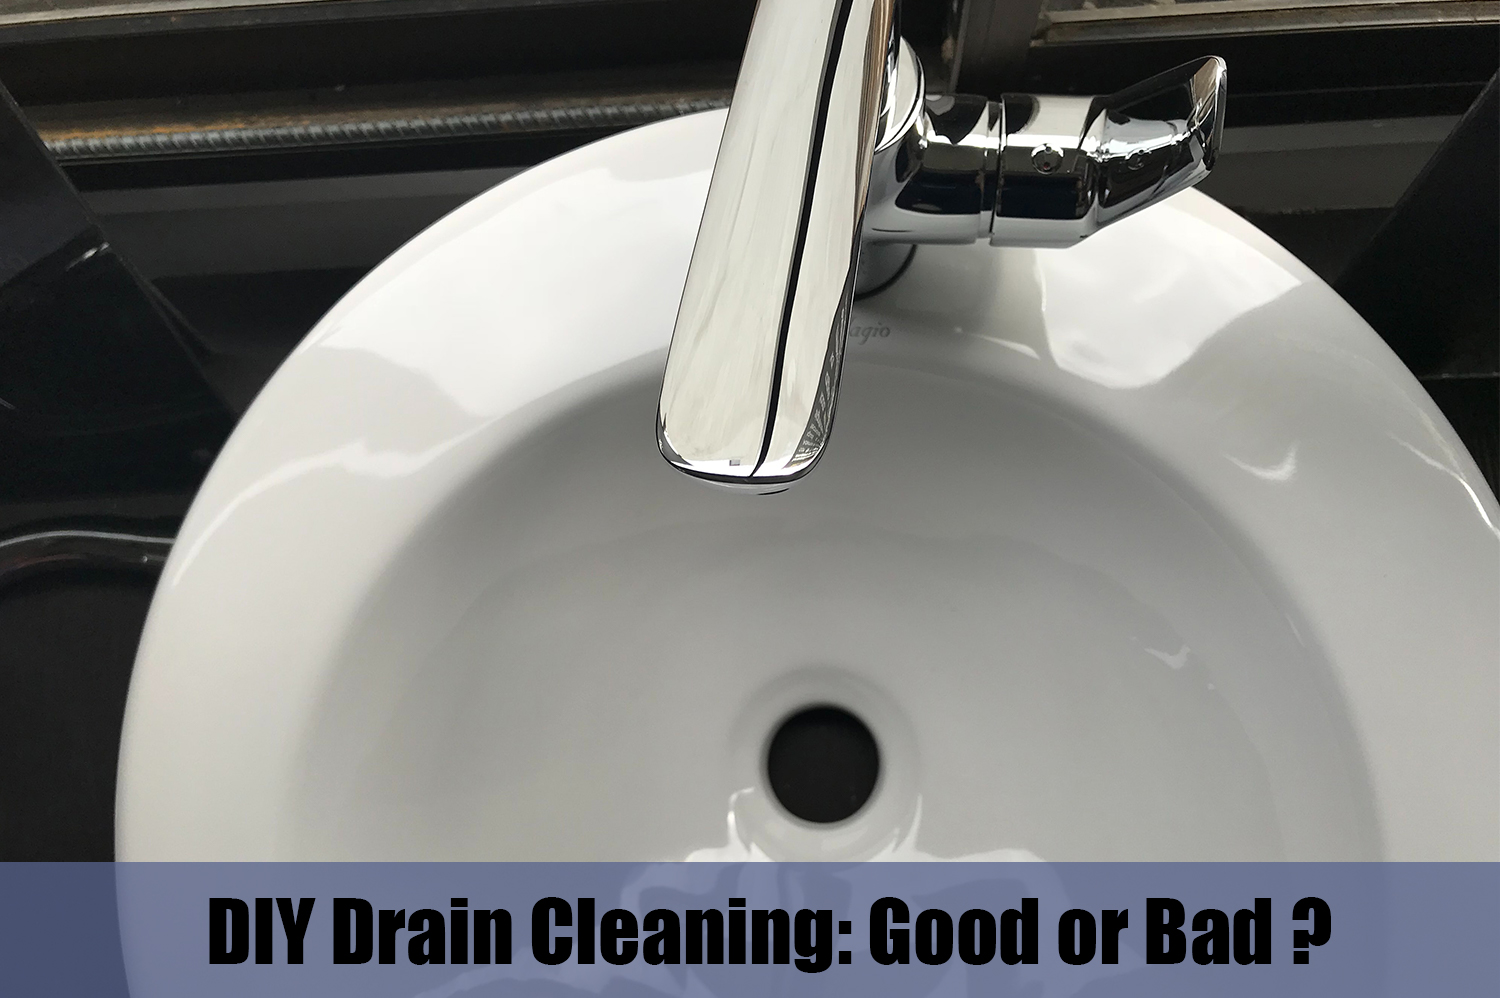 Looking down on white sink with clogged drain. DIY drain cleaning might not be the best option though.